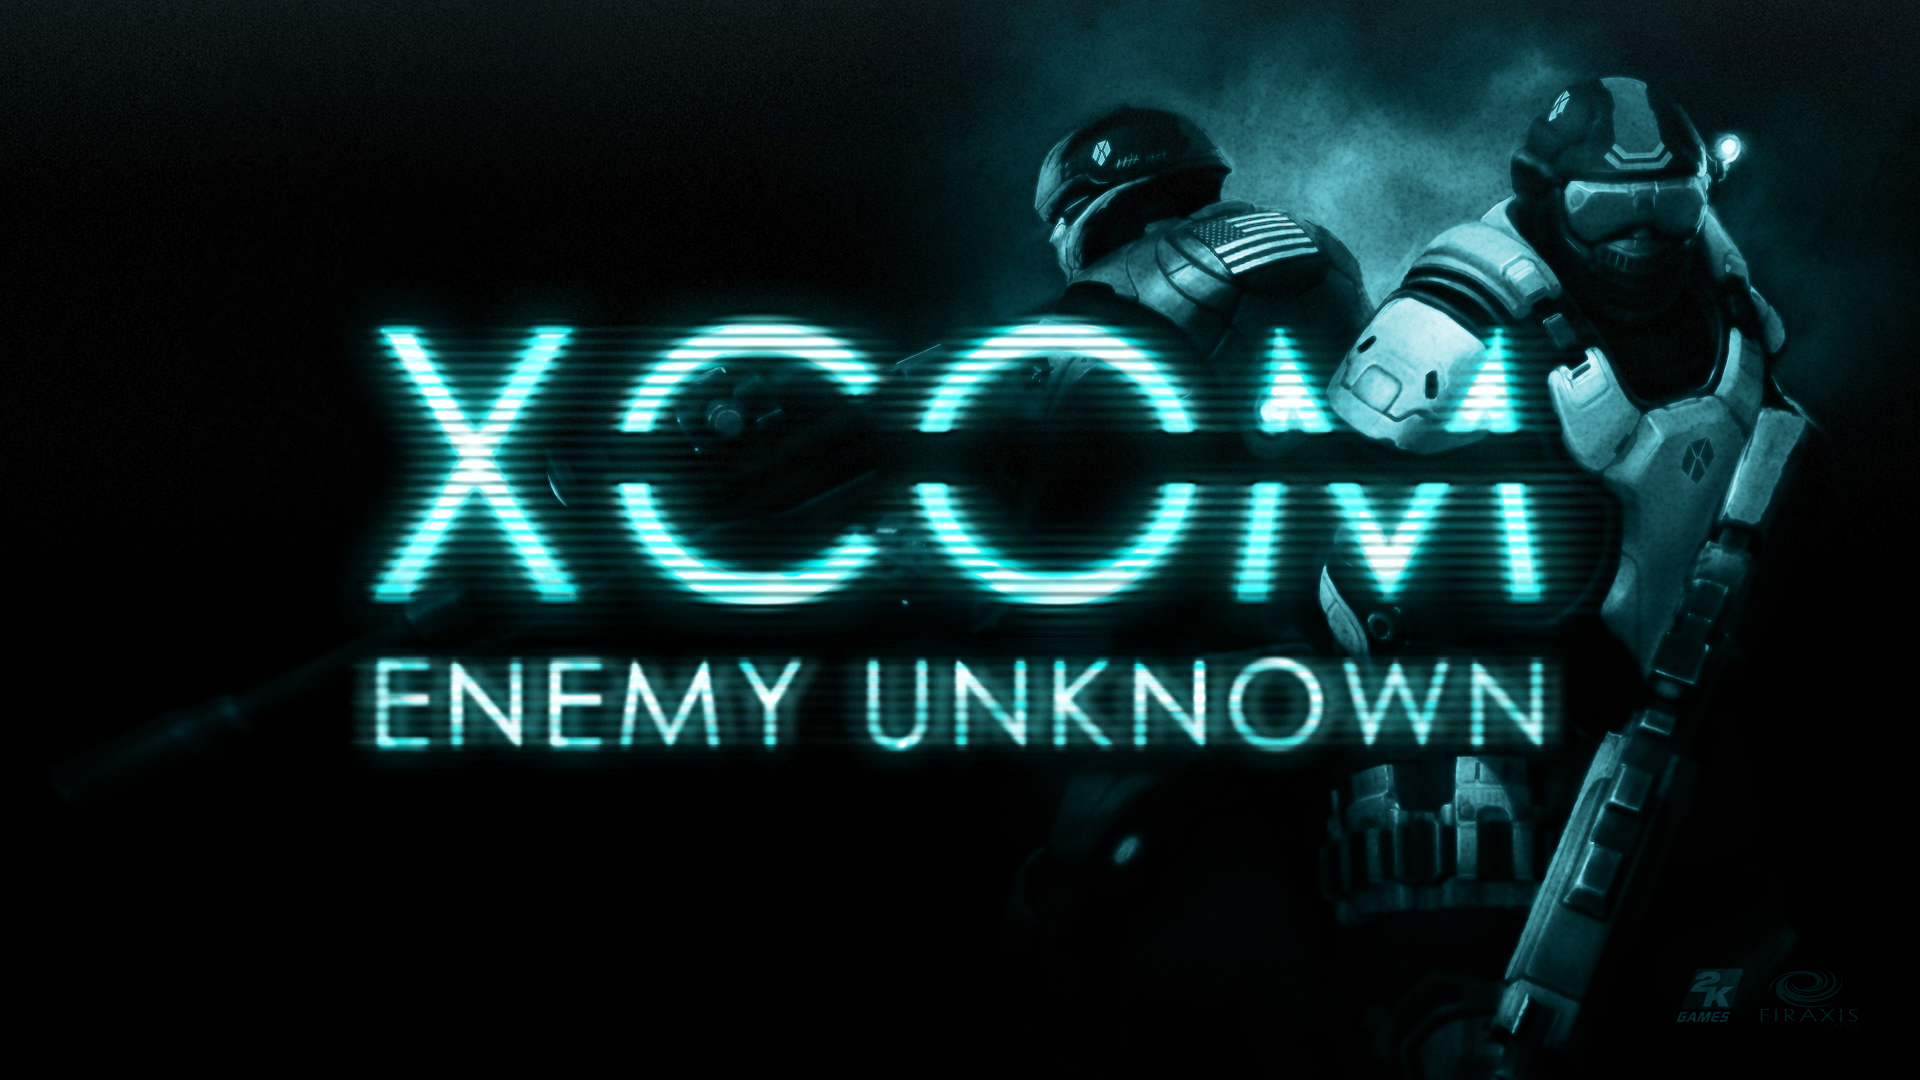 Xcom: Enemy Within - Wallpaper by Christian2506 on DeviantArt